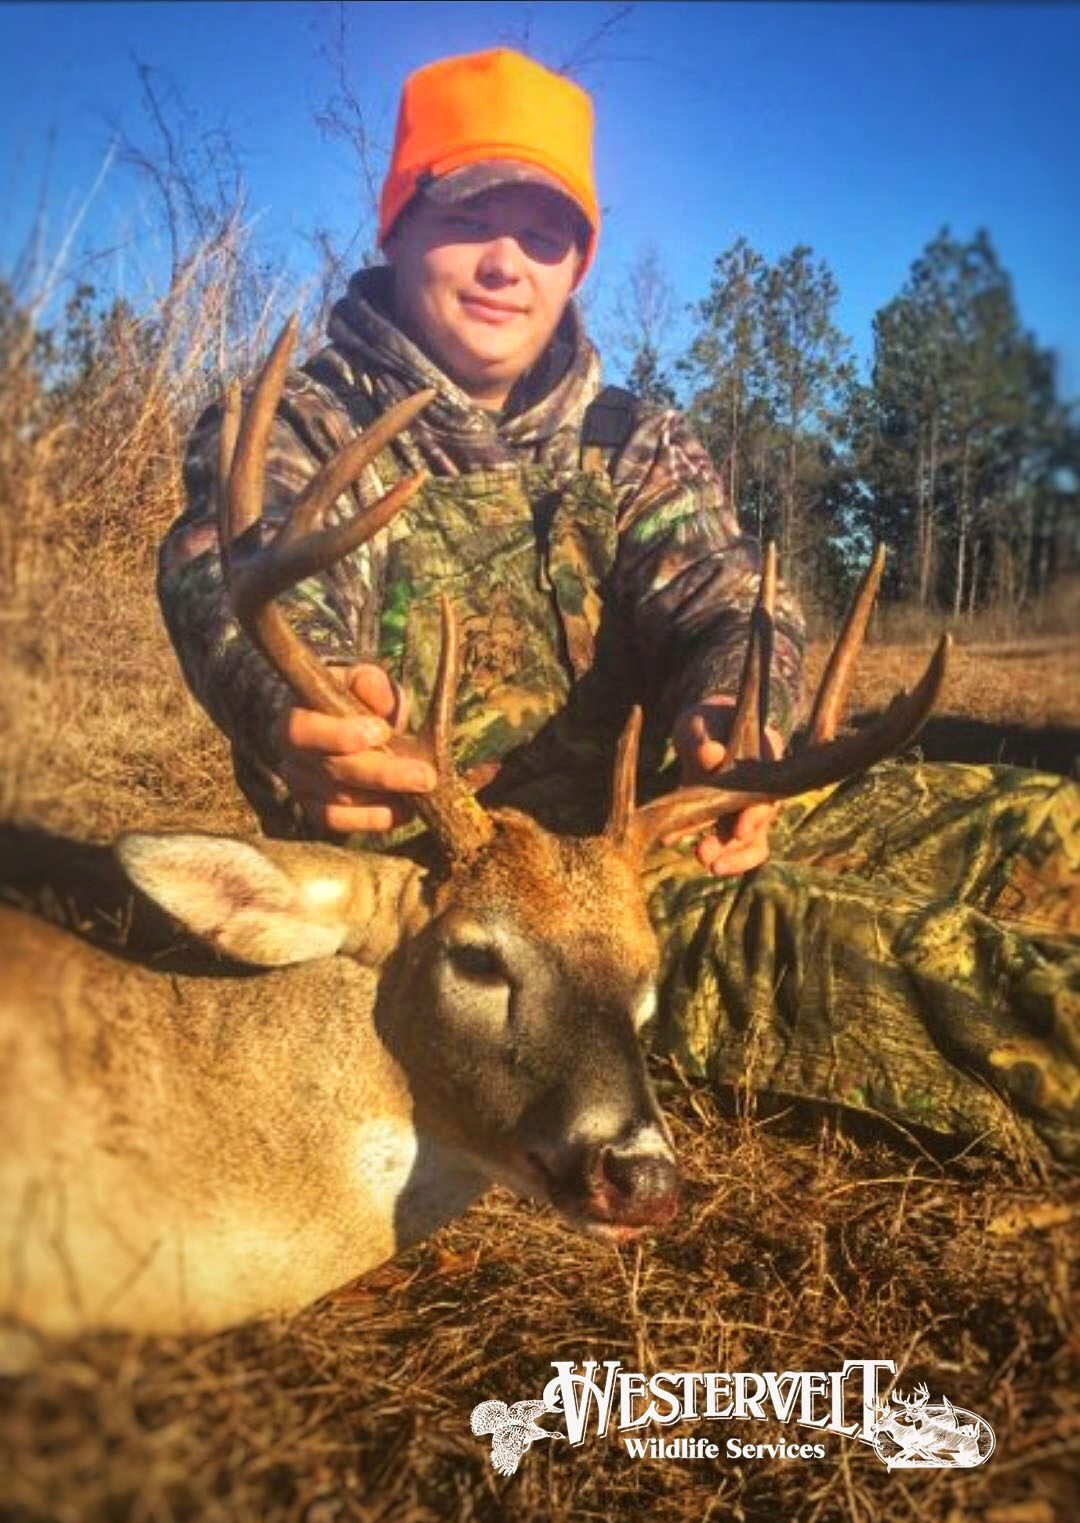 Alabama Deer Hunting Clubs amp Hunting Land for Leases